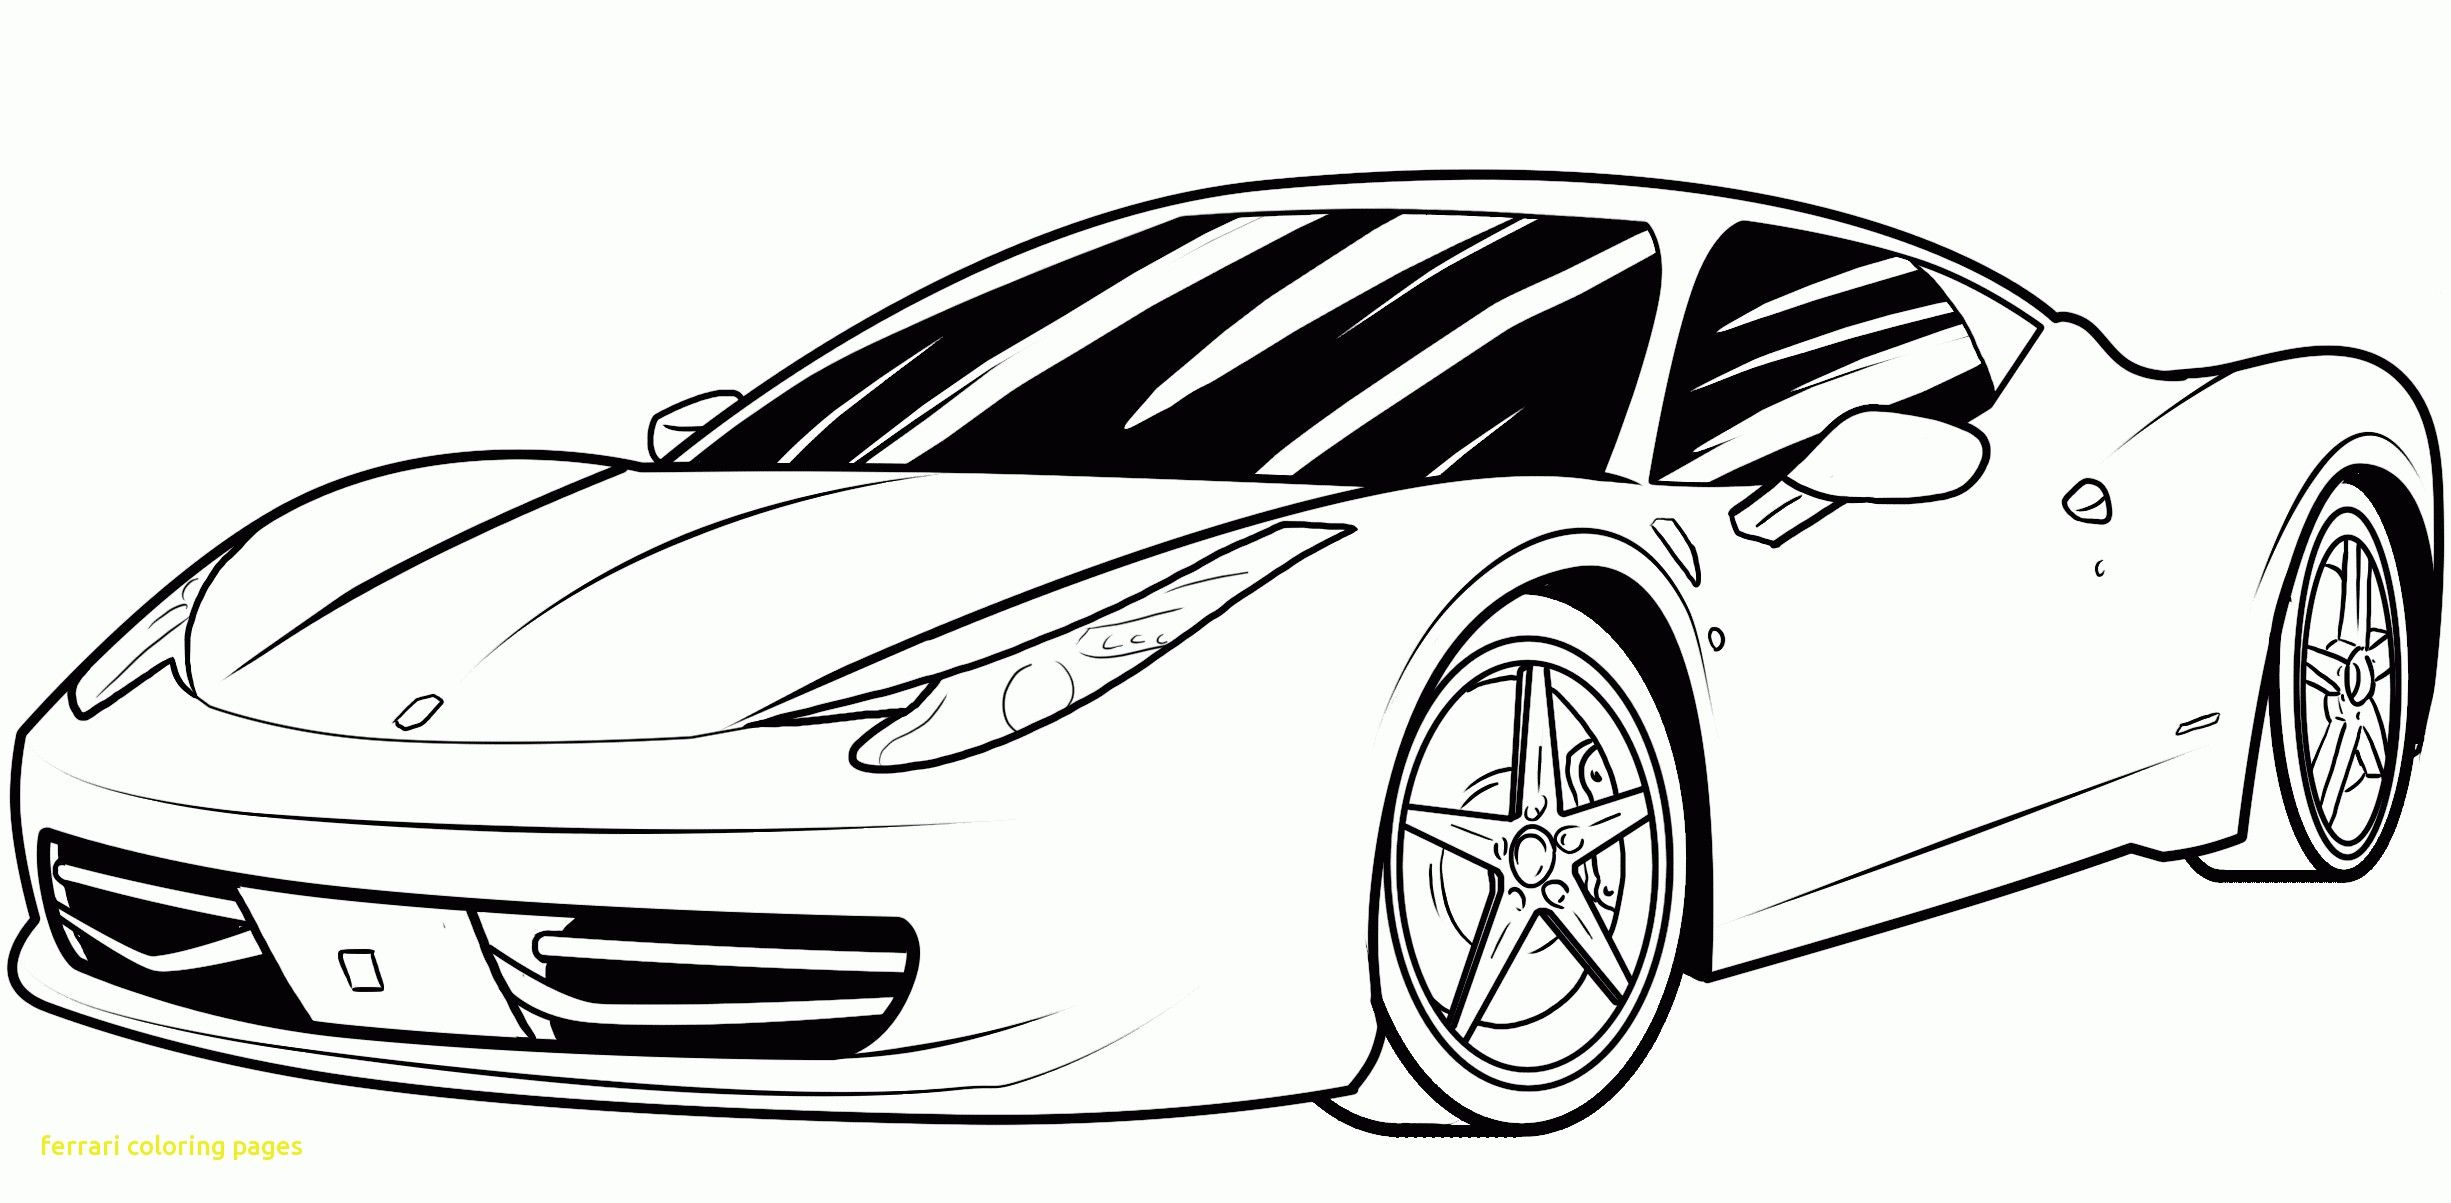 Ferrari Colouring Pages To Print Cars Coloring Pages Race Car Coloring Pages Sports Coloring Pages